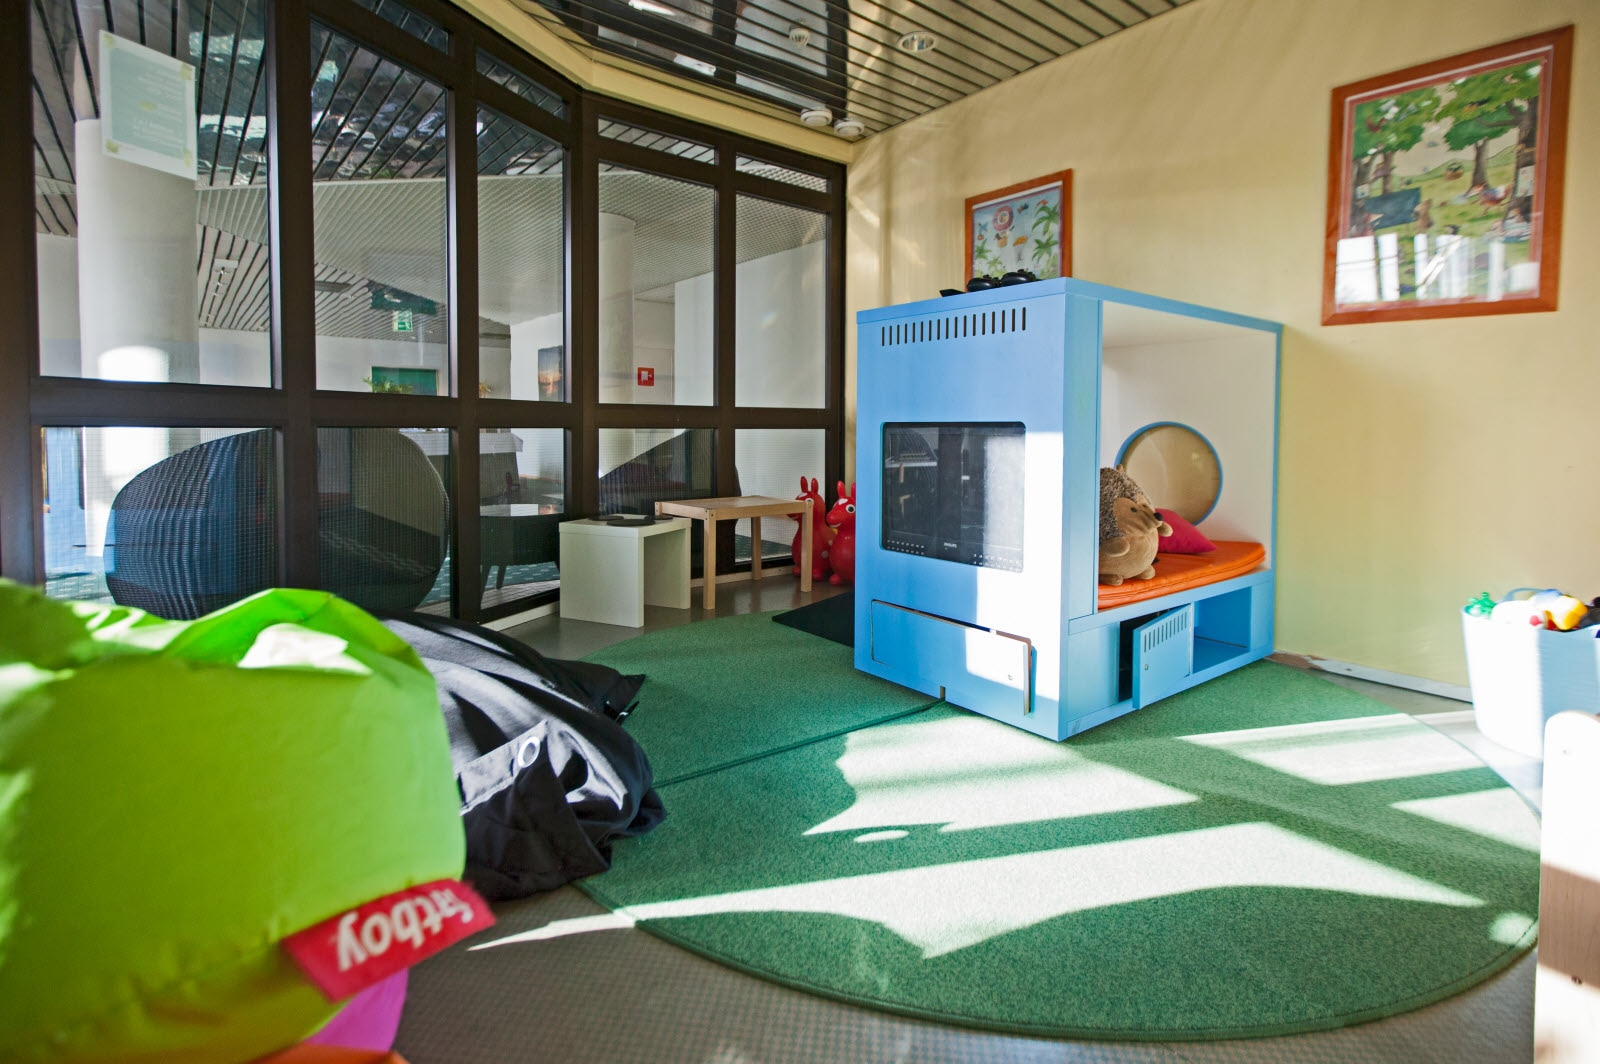 Scandic-Kuopio-Kids-Play-Room.jpg